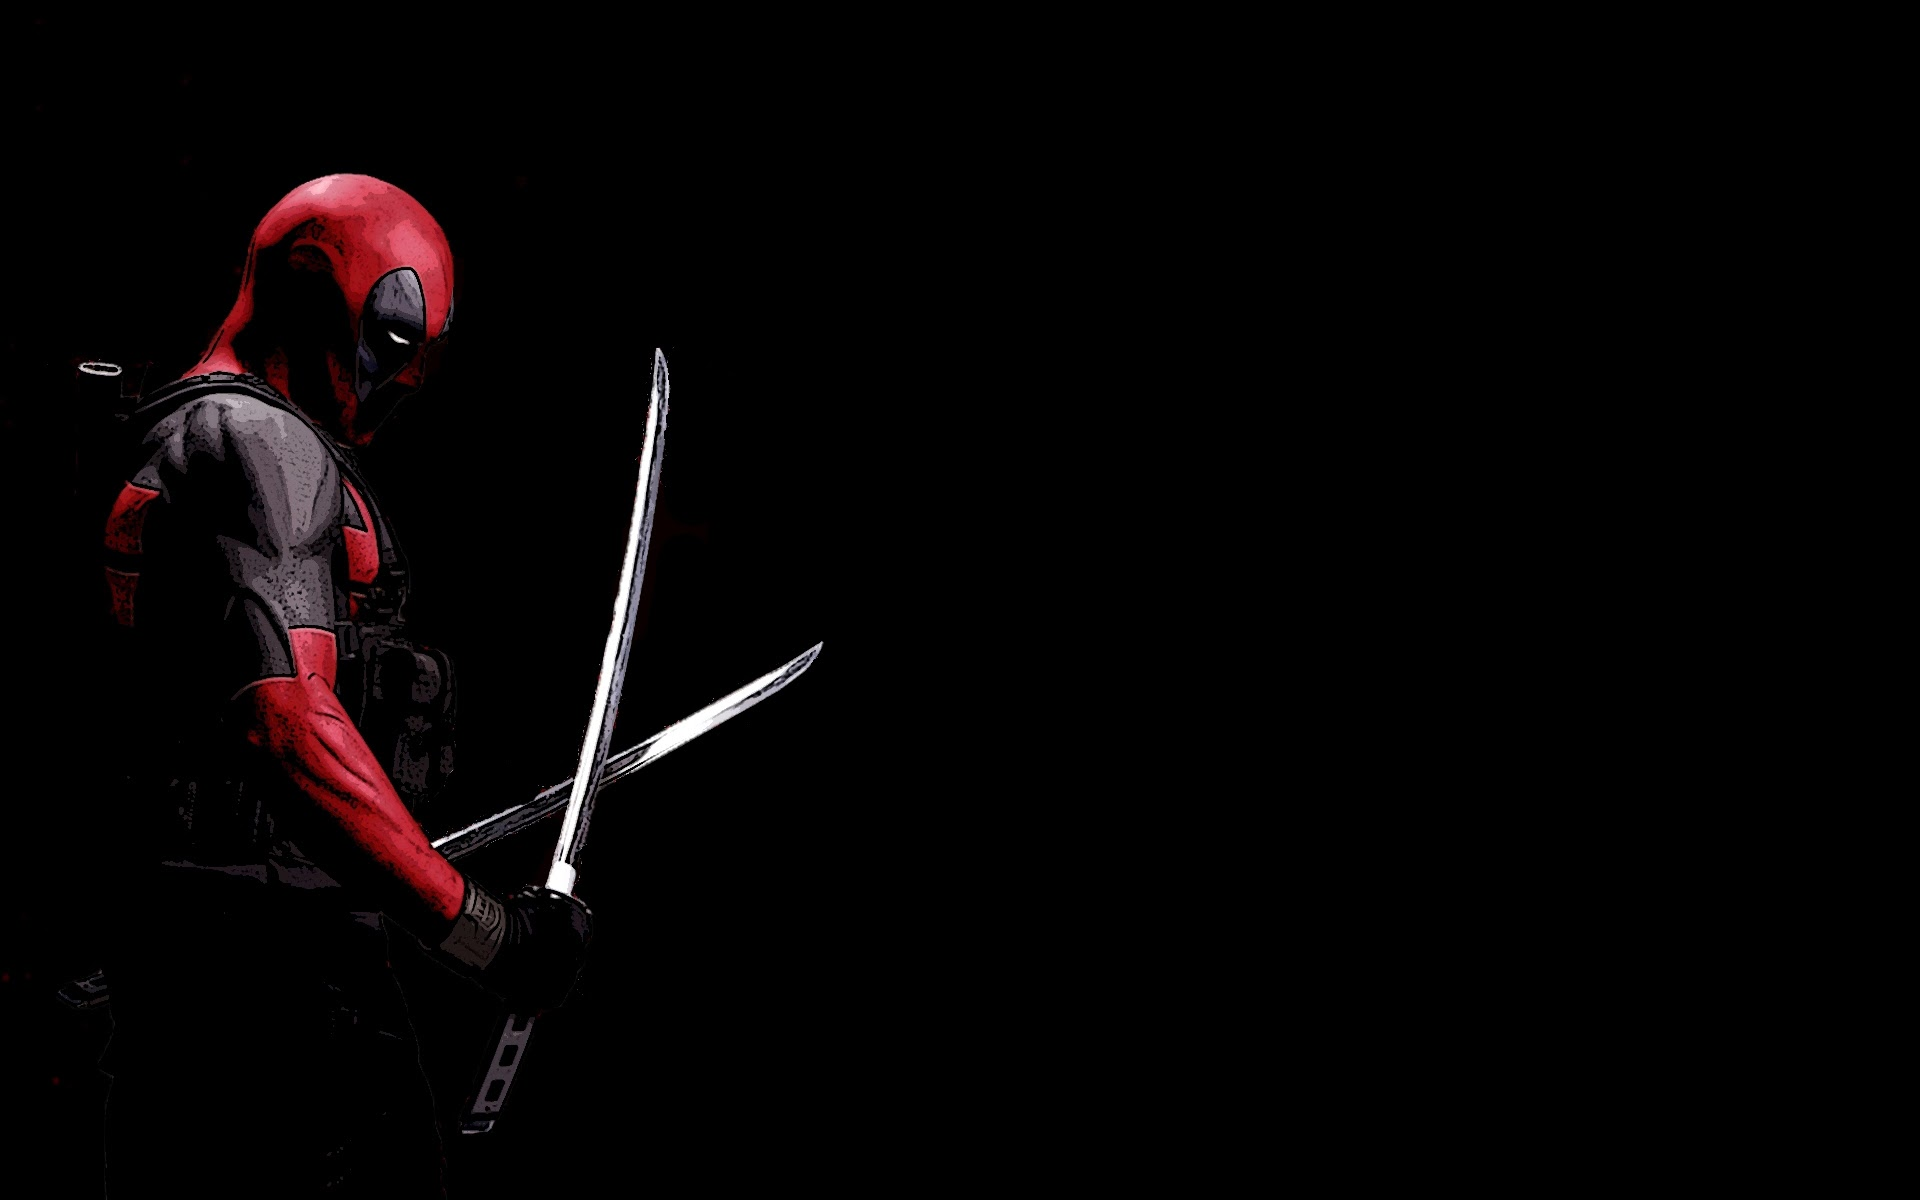 Deadpool Black Background Katana Marvel Comics HD Wallpaper 1920x1200    Deadpool Wallpaper Hd 1080p